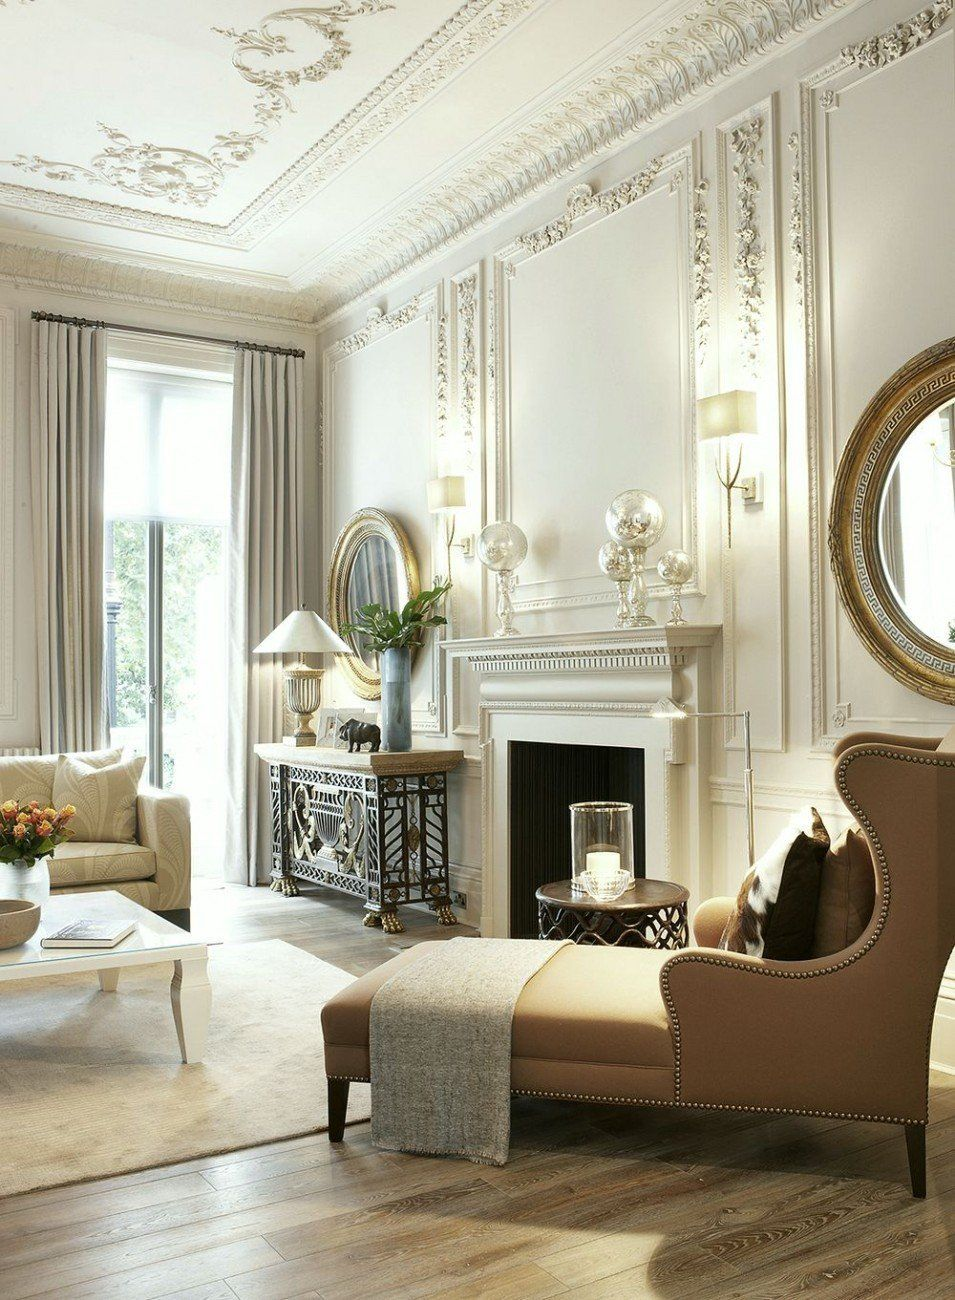 Plaster Ceiling Design Architectural Mouldings Home House Interior Classic Interior